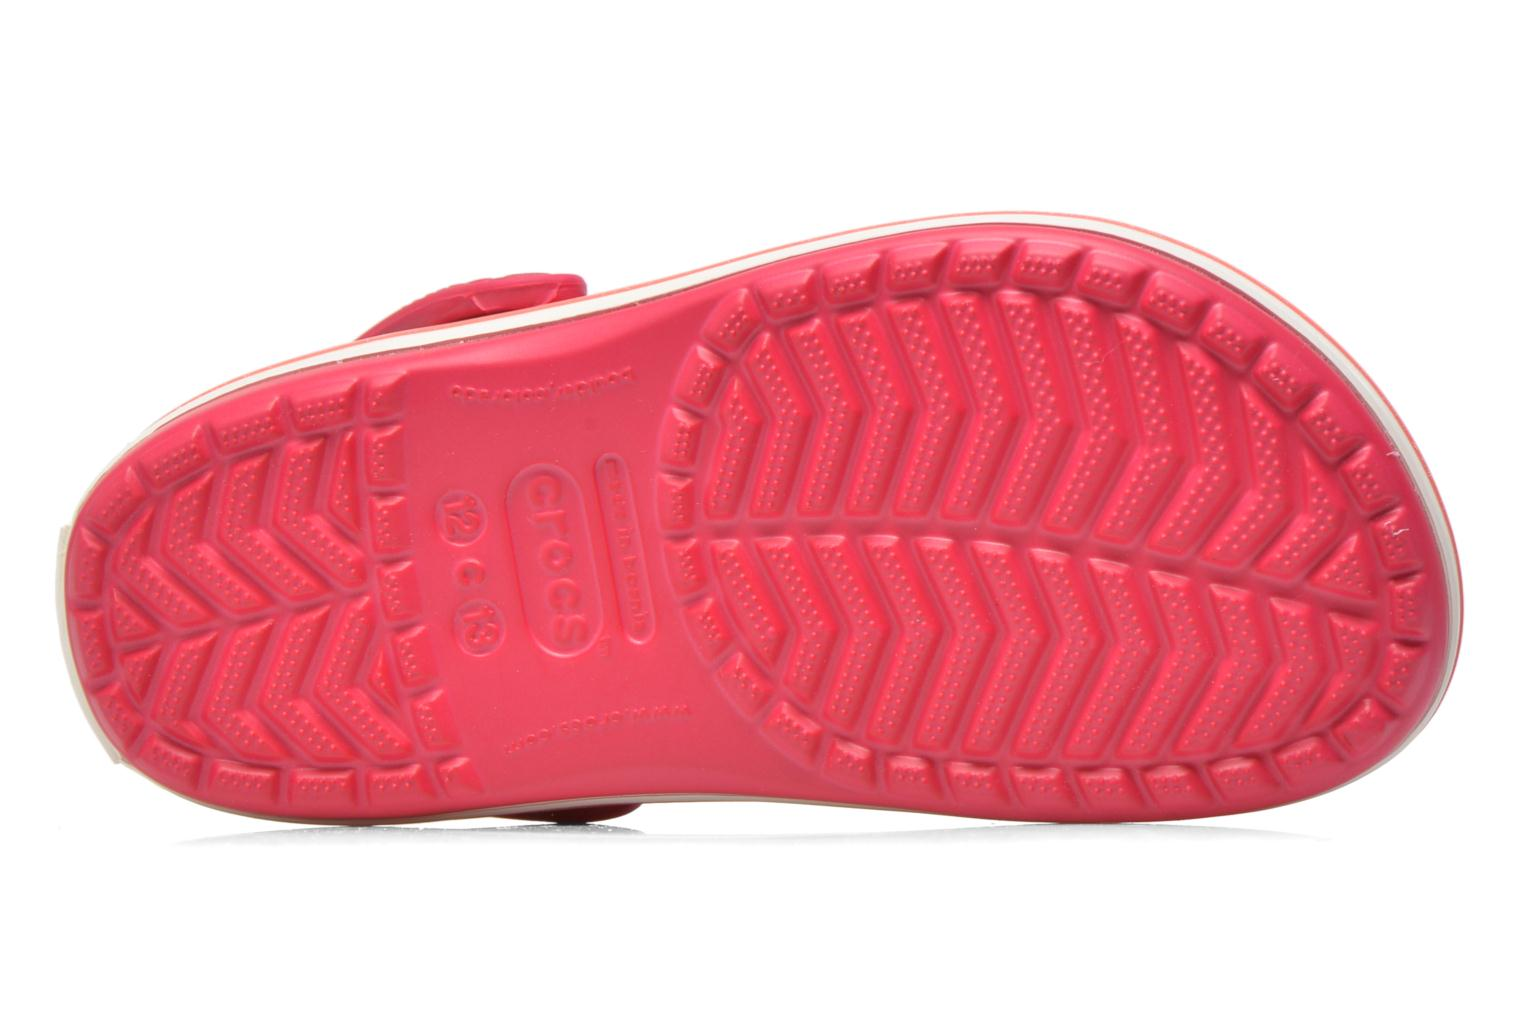 Sandals Crocs Crocsband Kids Pink view from above